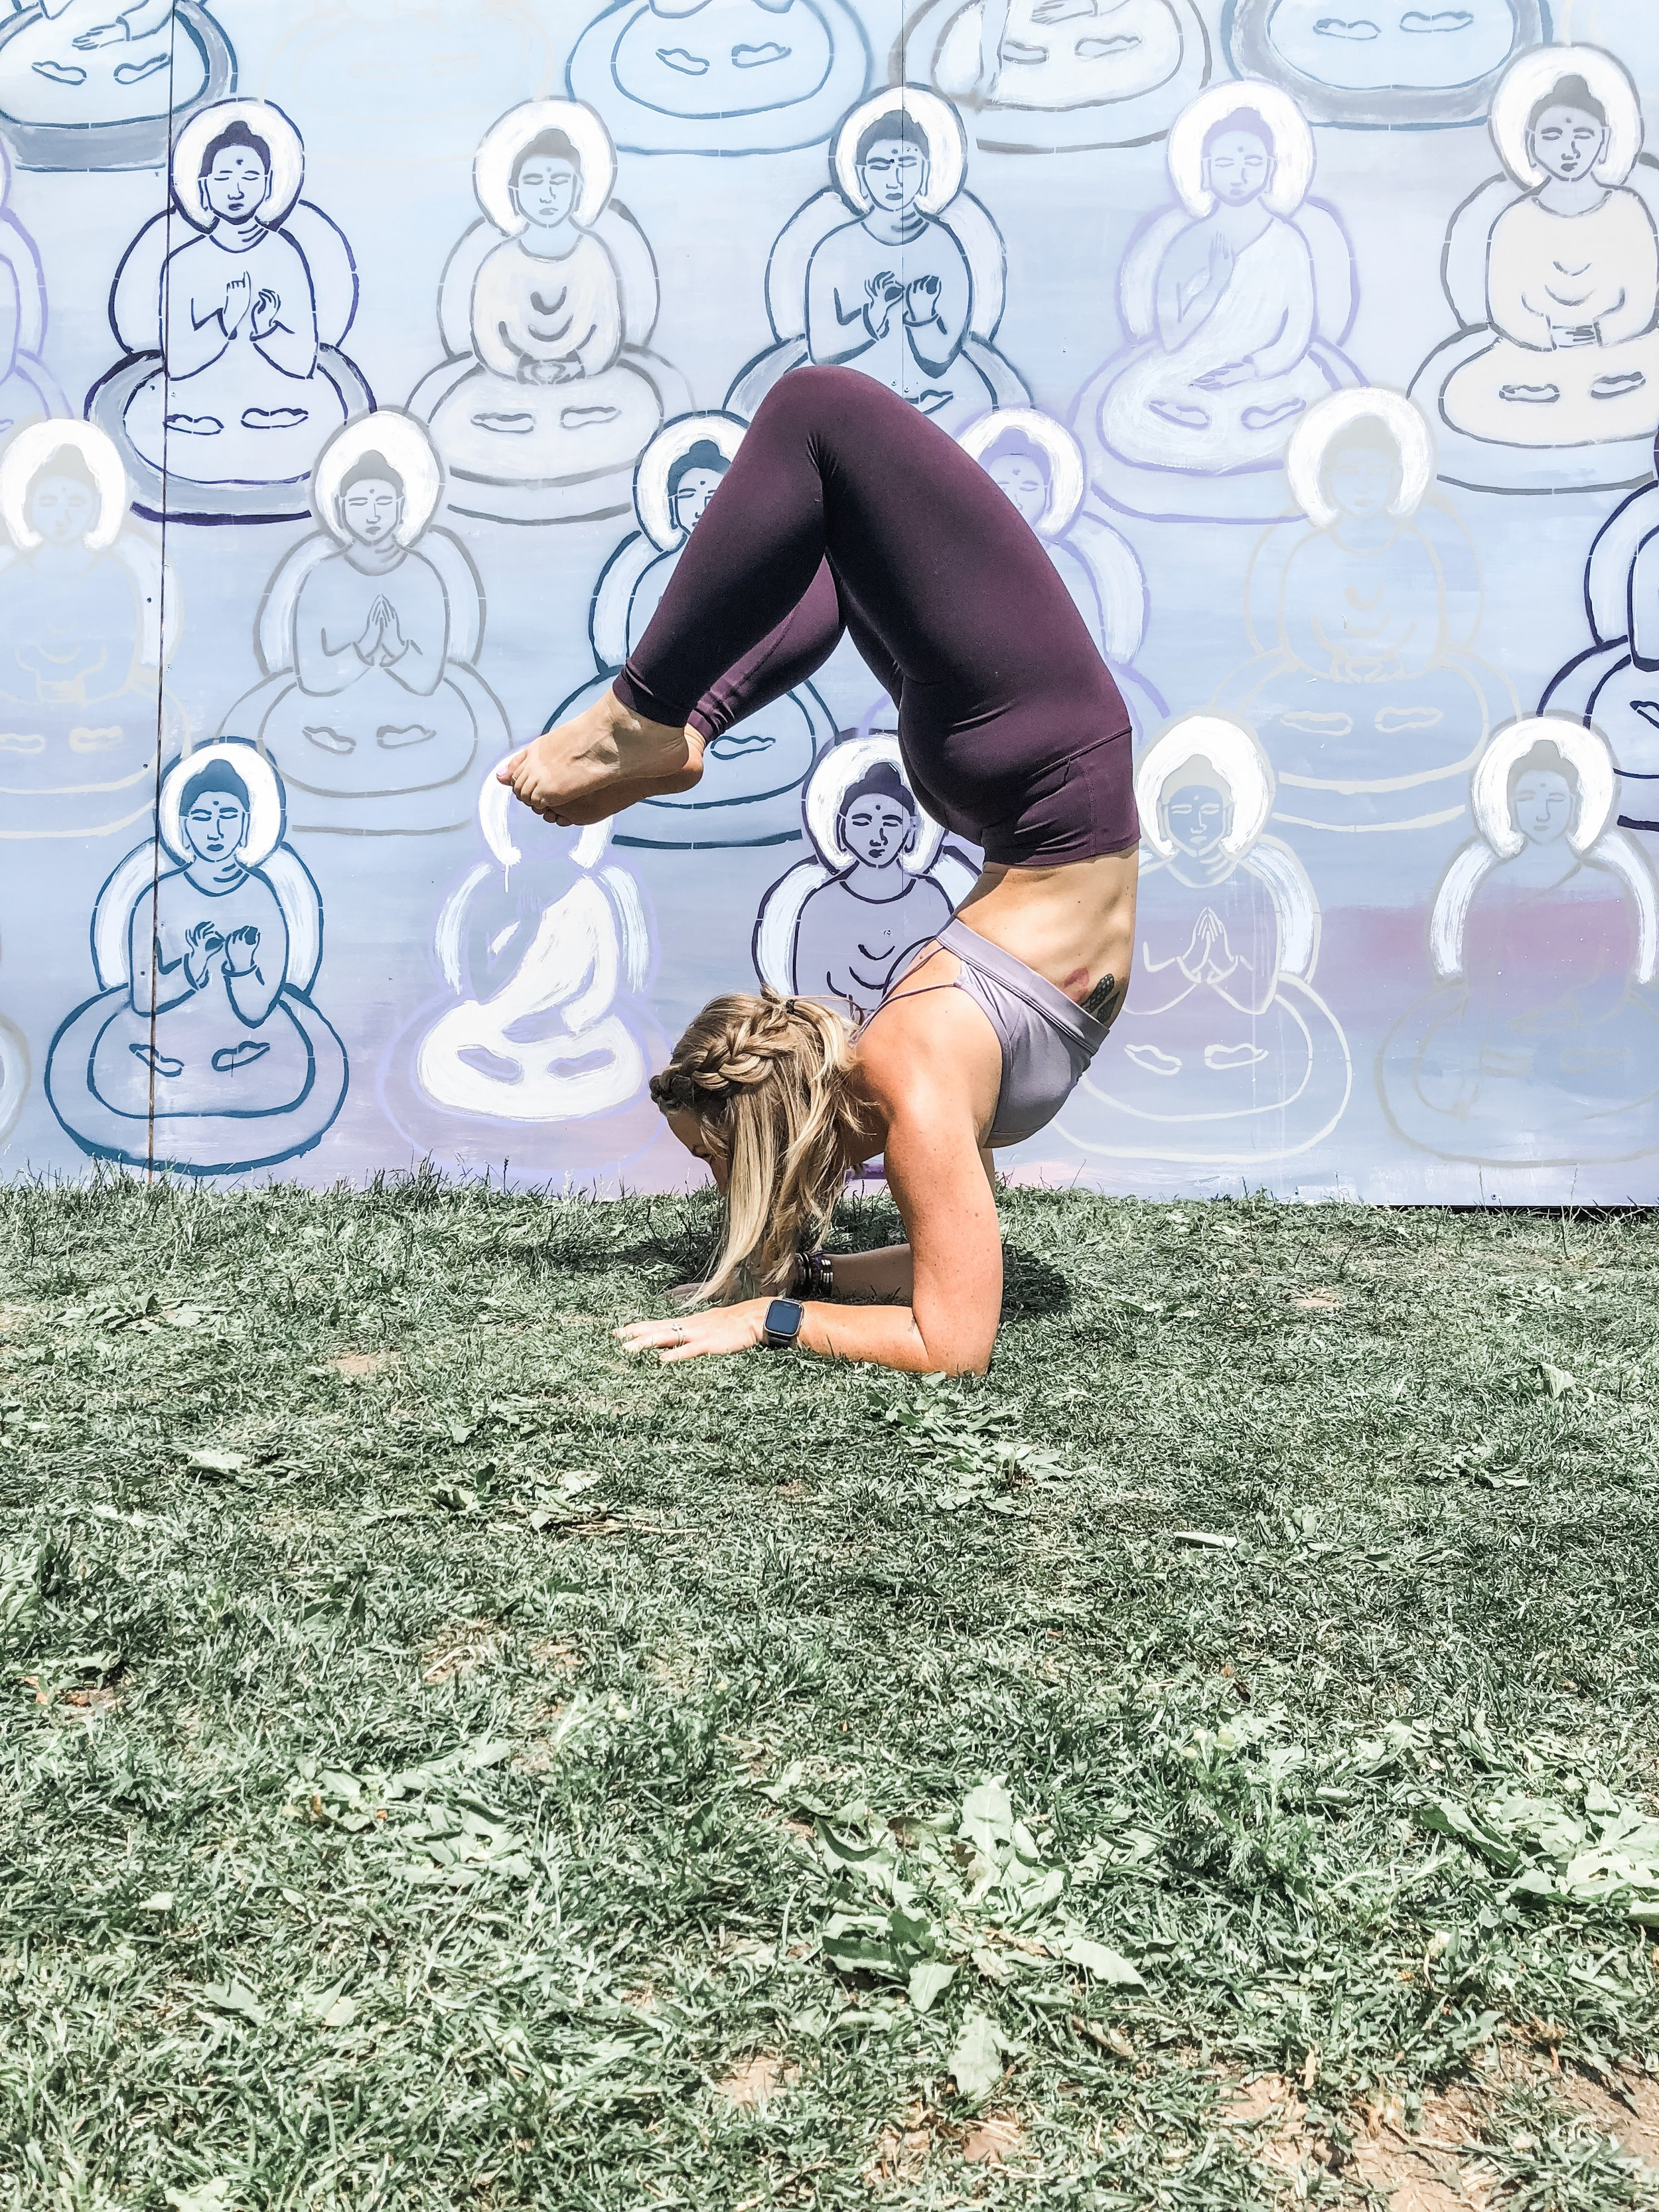 A contribution to Amanda Giacomini's Ten Thousand Buddhas at Wanderlust Squaw Valley | 2018